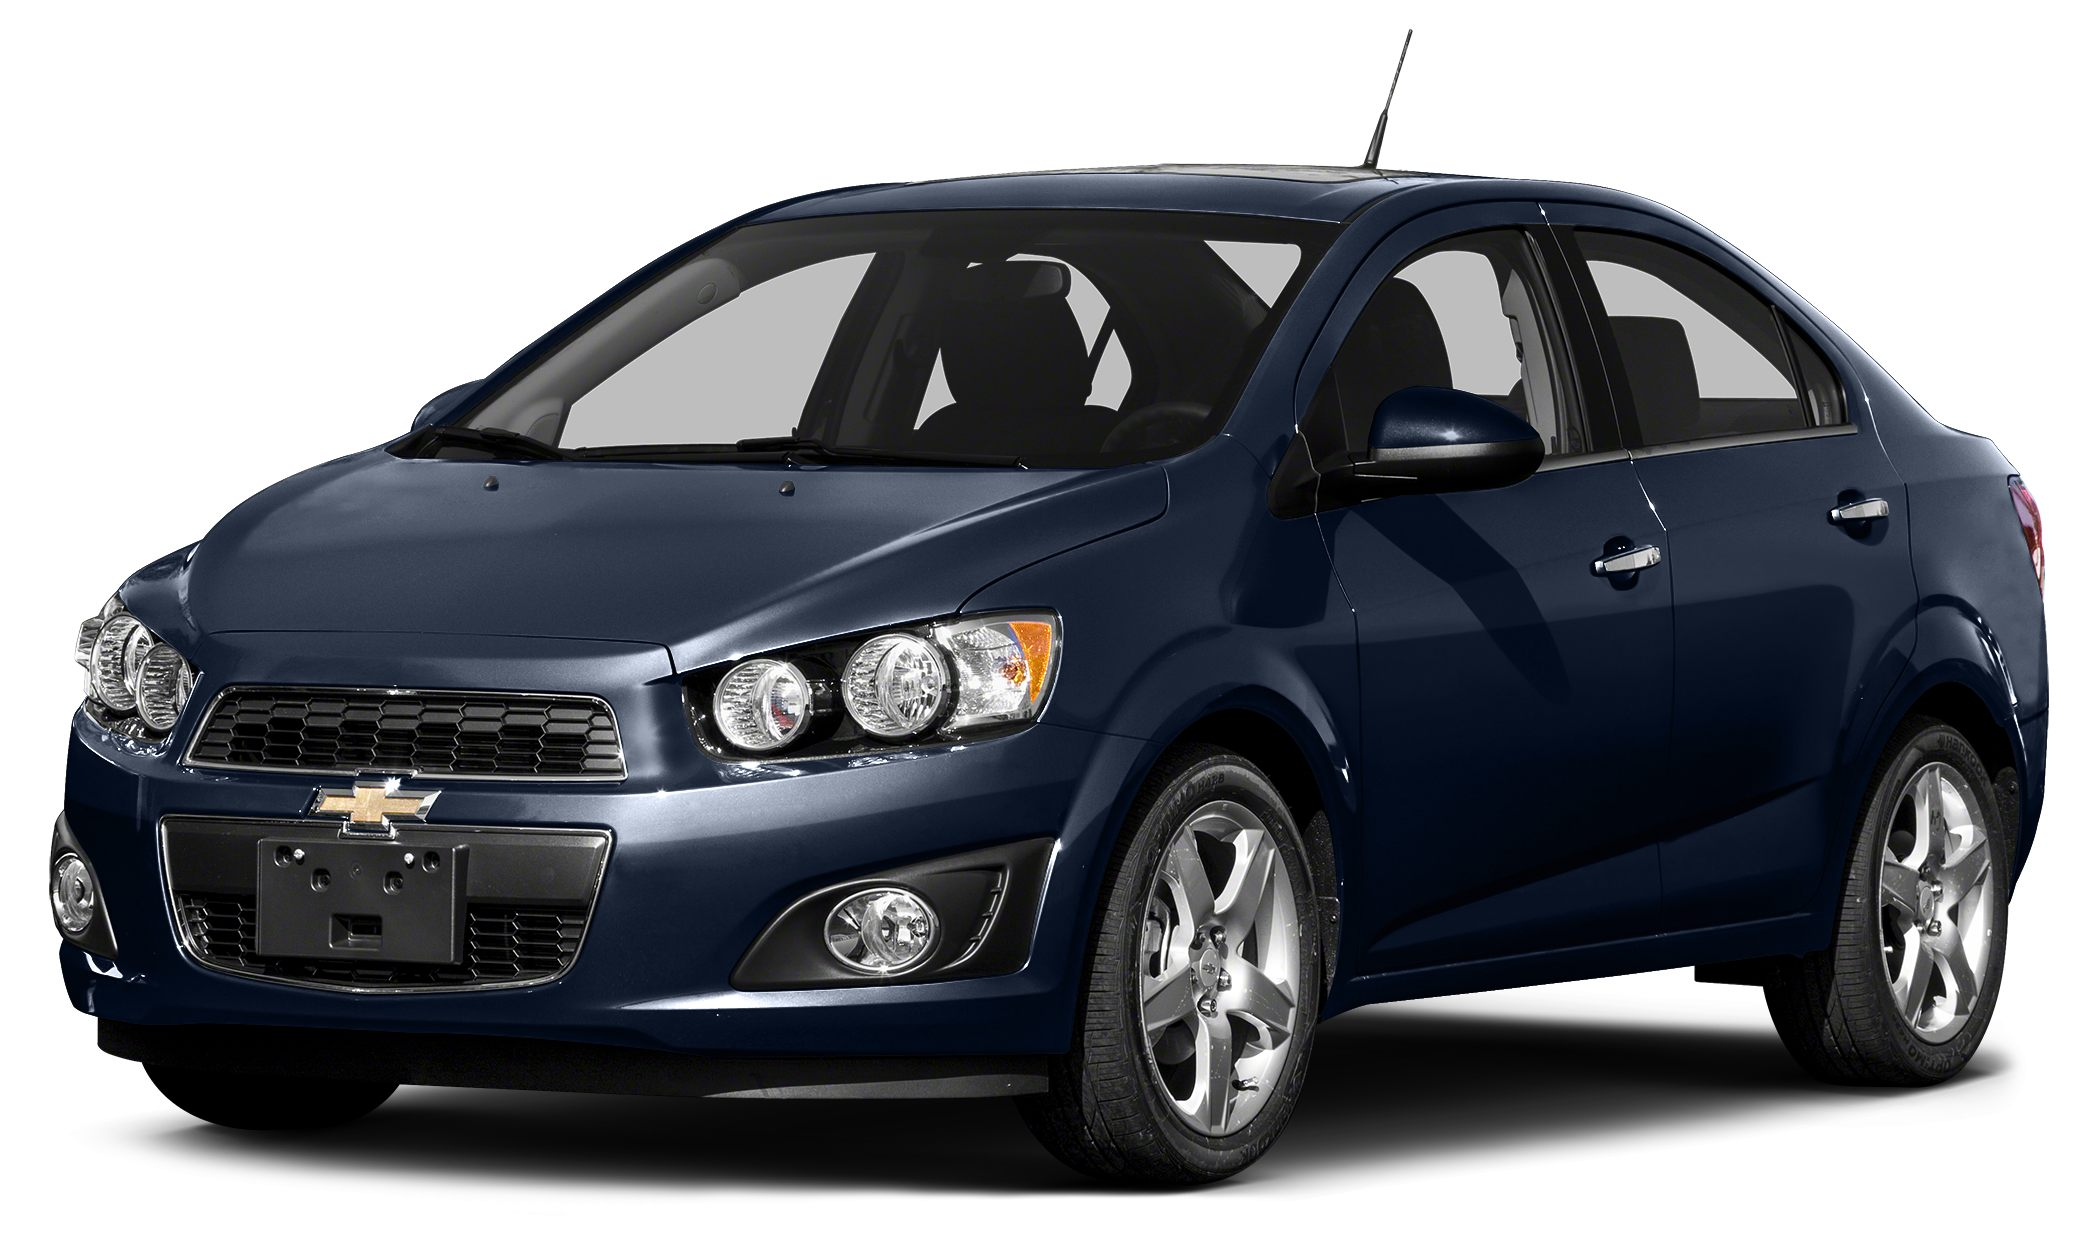 2015 Chevrolet Sonic LS Excellent Condition LOW MILES - 11548 LS trim EPA 35 MPG Hwy26 MPG Ci